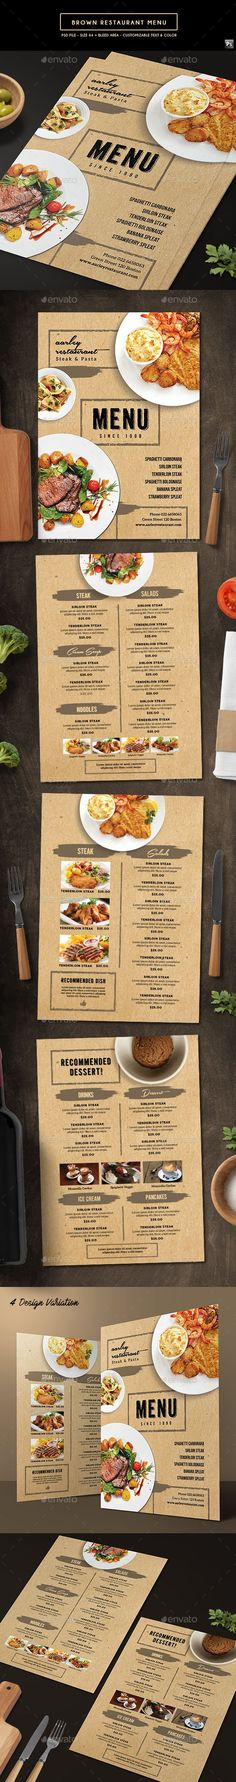 Brown Restaurant Menu - Food Menus Print Templates